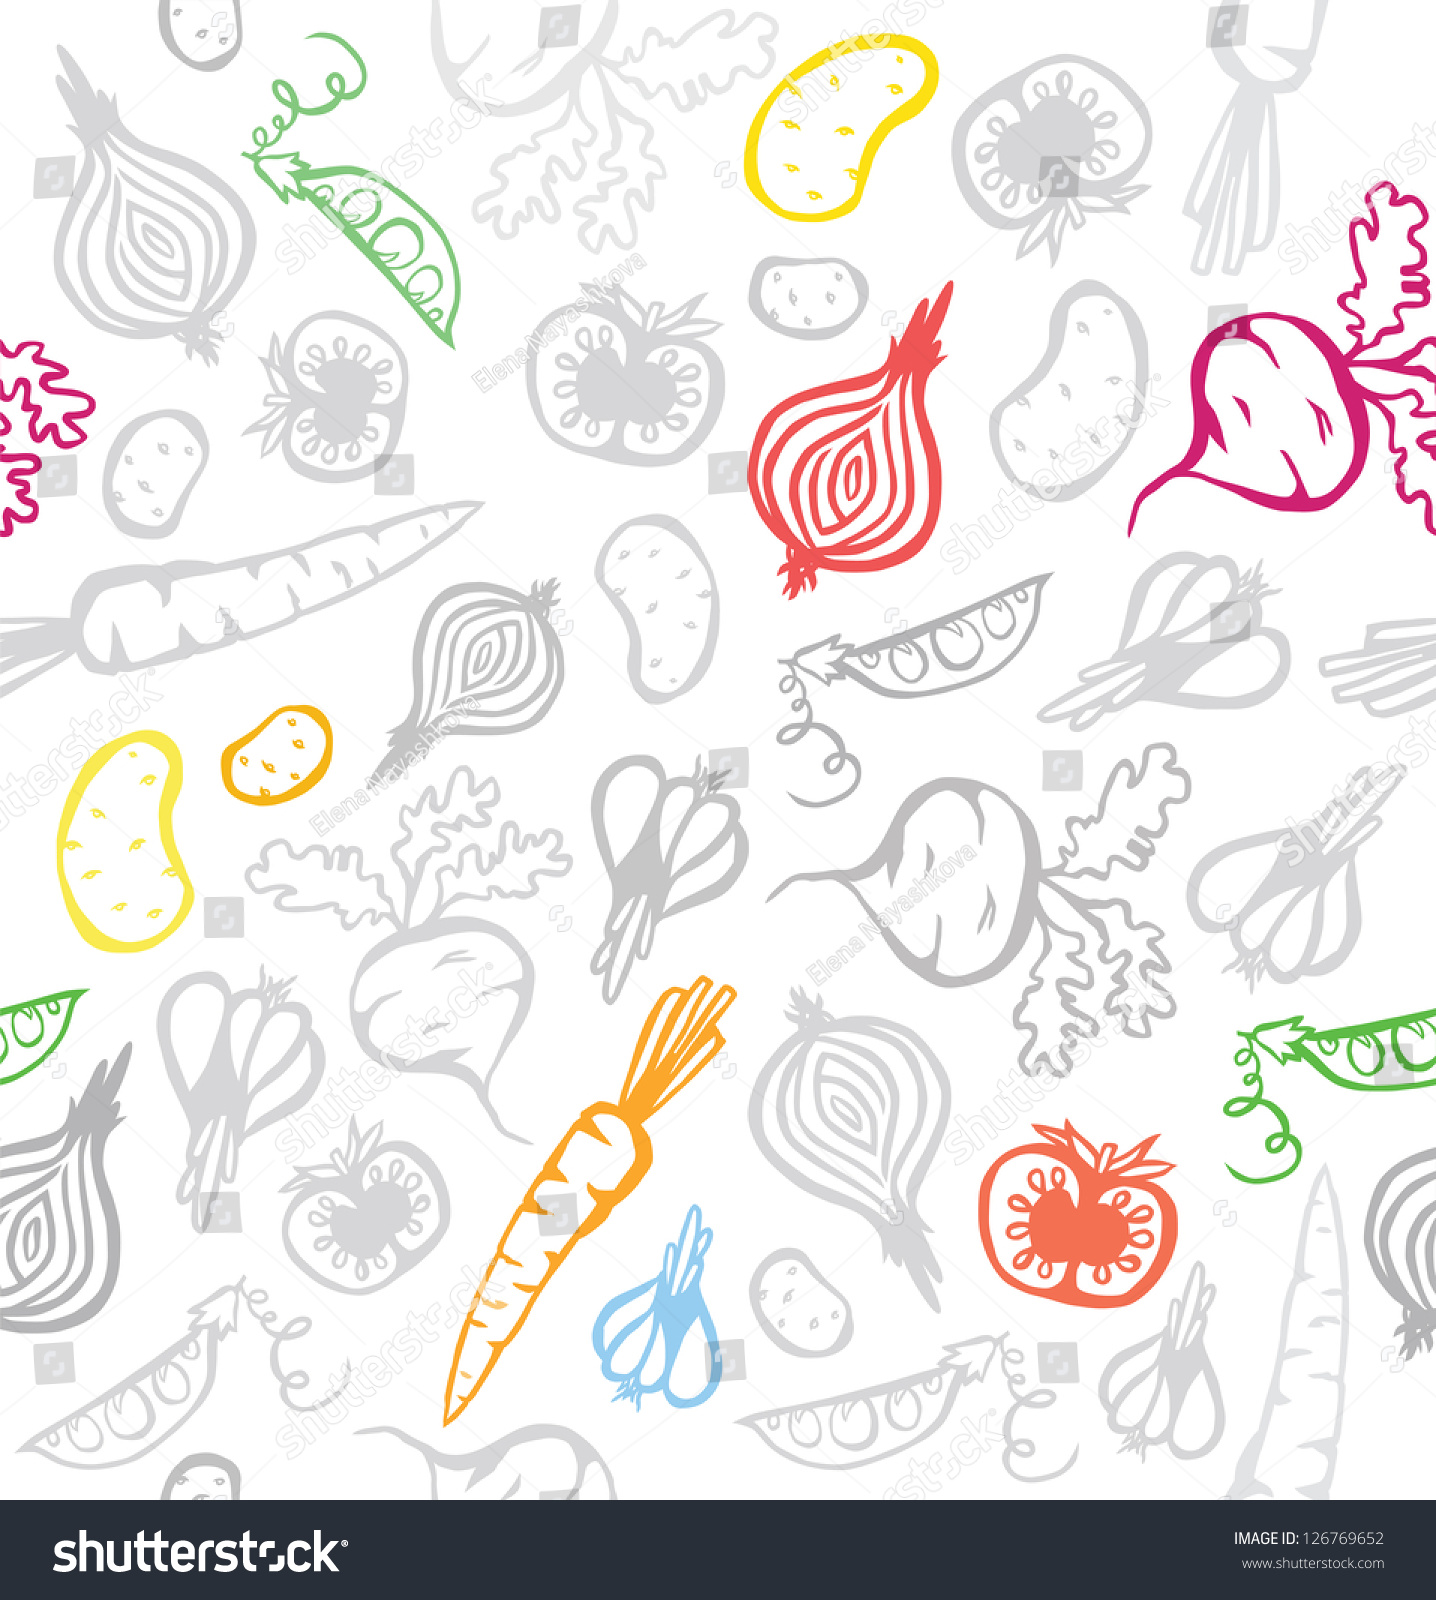 Seamless Pretty Vegetable Background Stock Vector ...